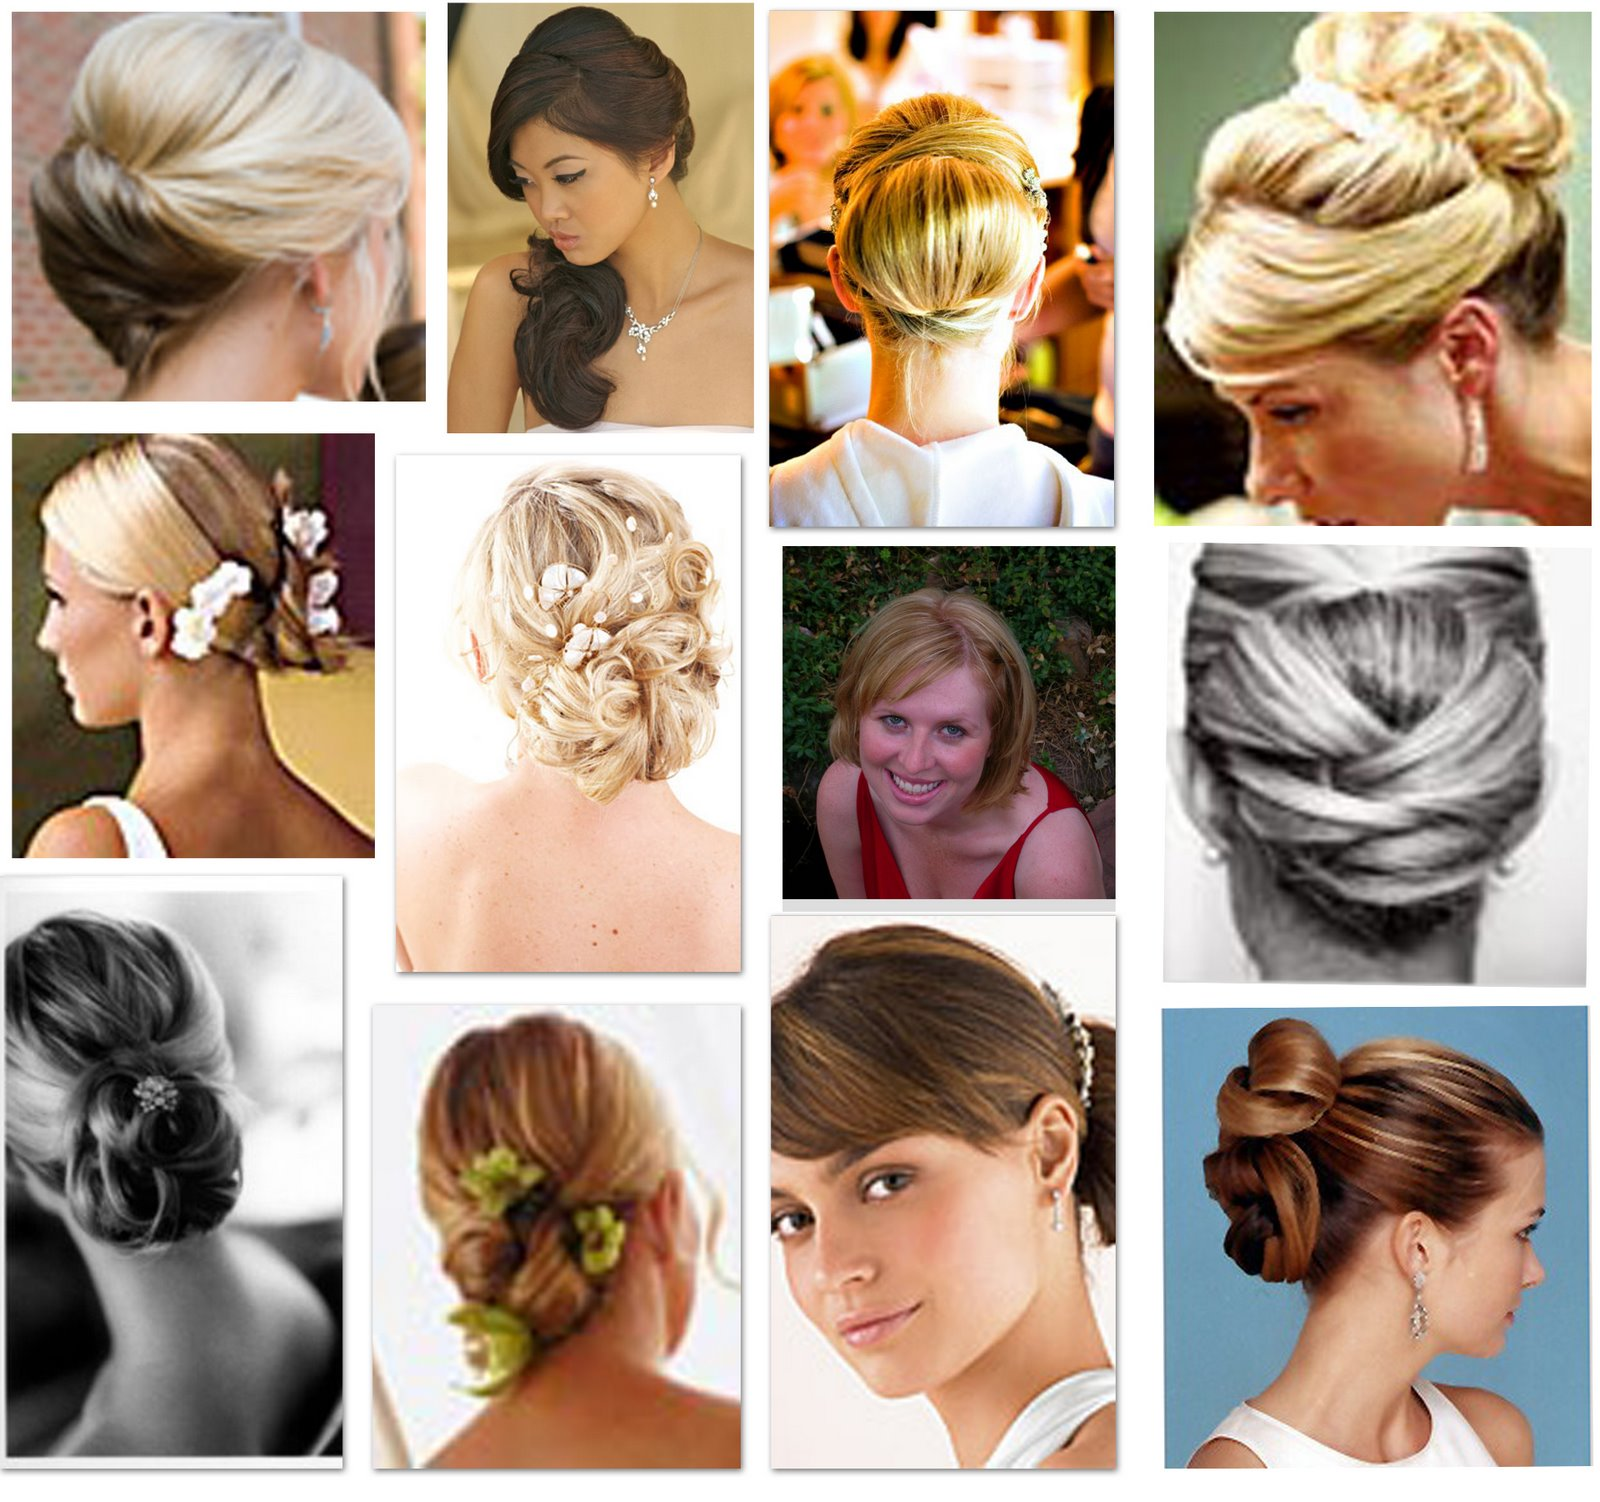 Day 6 Your Wedding Hair